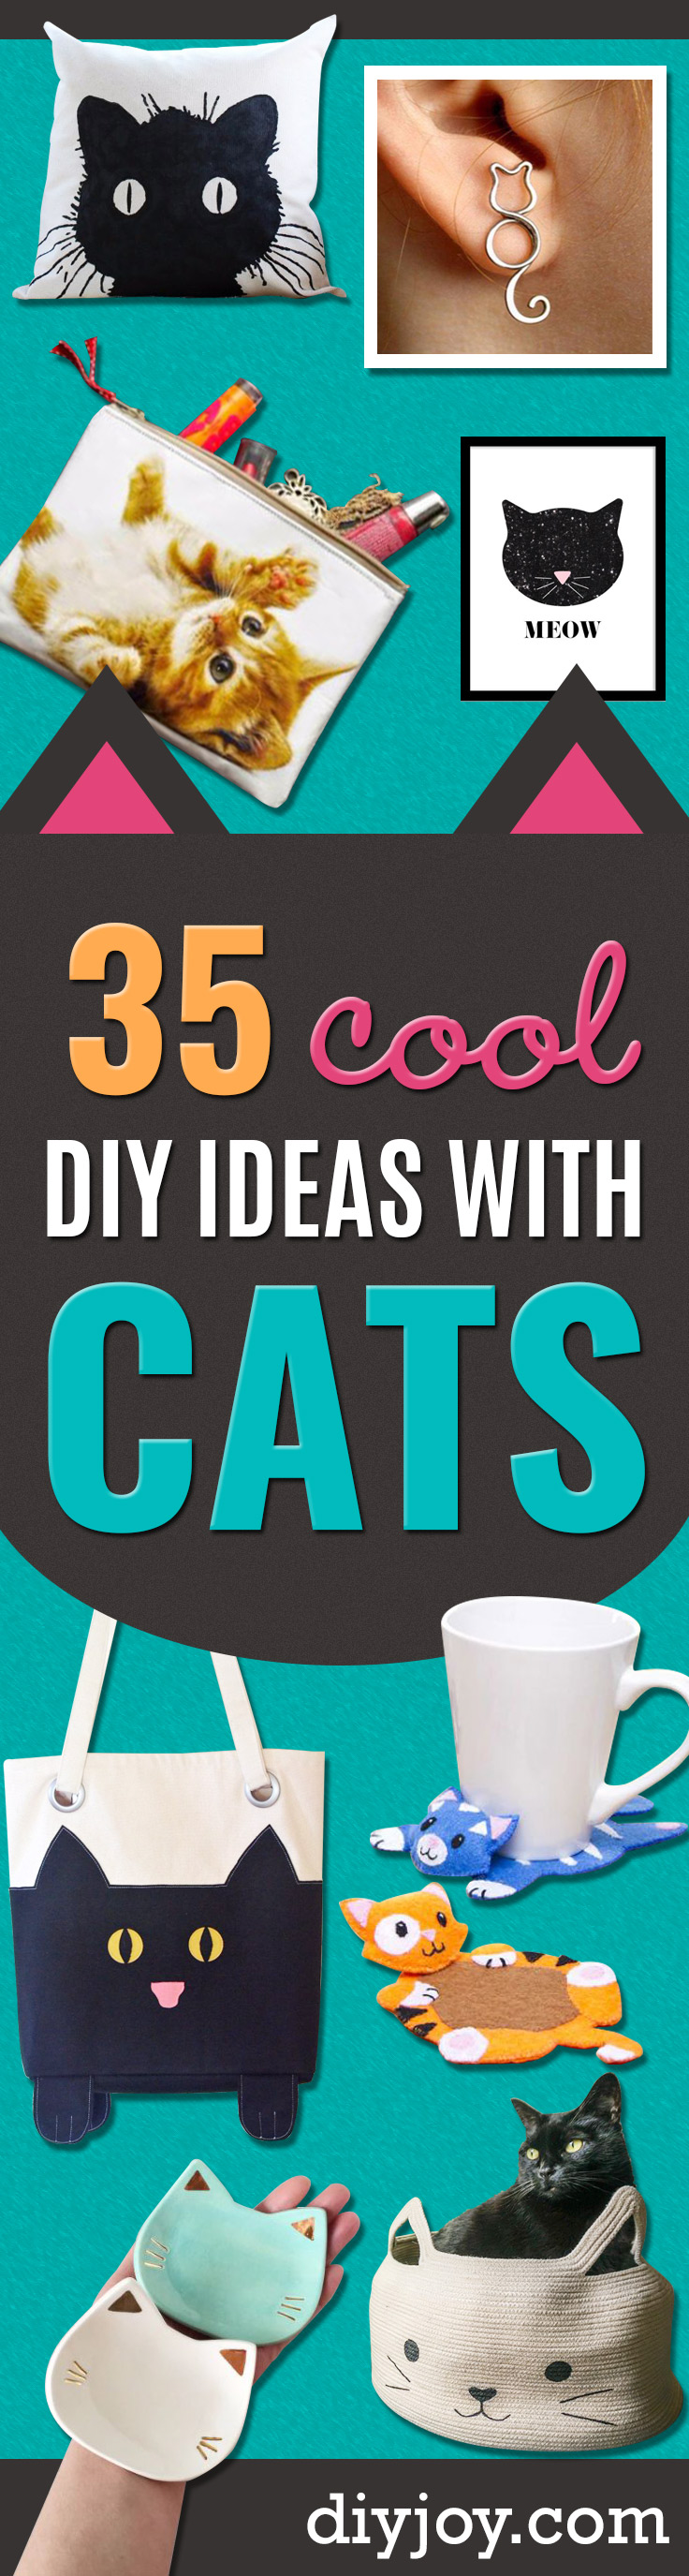 DIY Ideas With Cats - Cute and Easy DIY Projects for Cat Lovers - Wall and Home Decor Projects, Things To Make and Sell on Etsy - Quick Gifts to Make for Friends Who Have Kittens and Kitties - Homemade No Sew Projects- Fun Jewelry, Cool Clothes, Pillows and Kitty Accessories